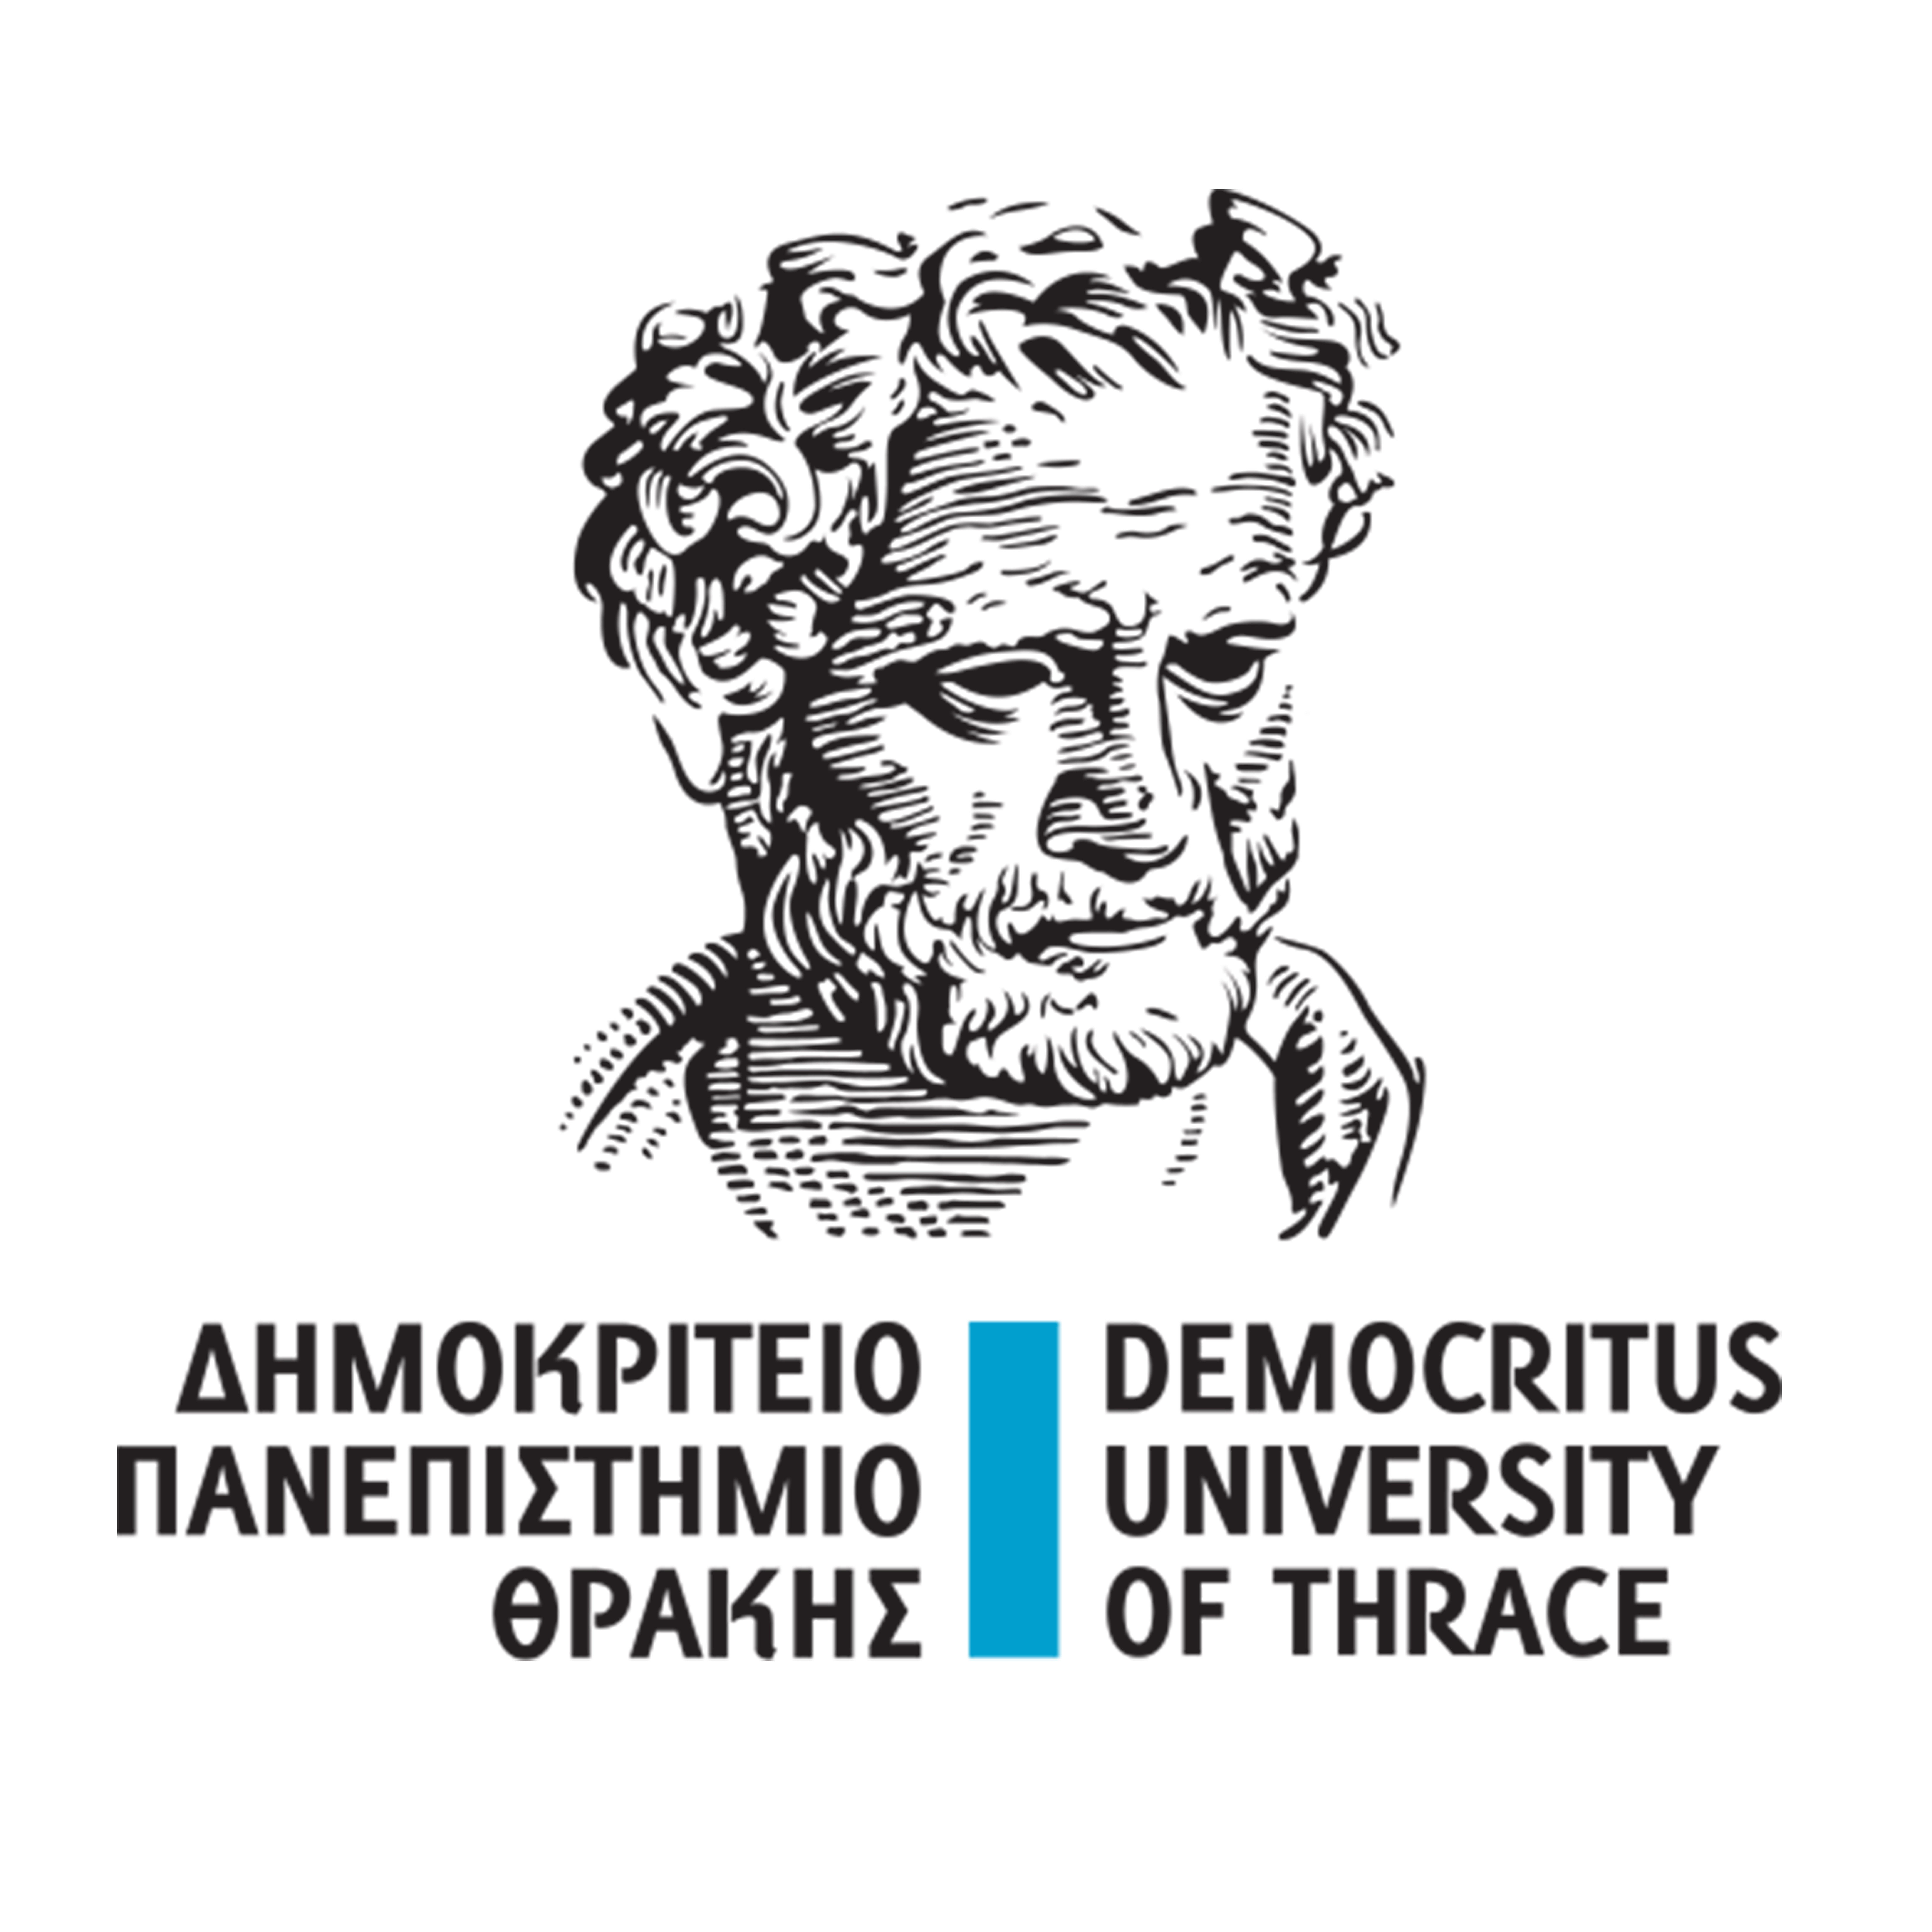 Democritus_University_of_Thrace_logo